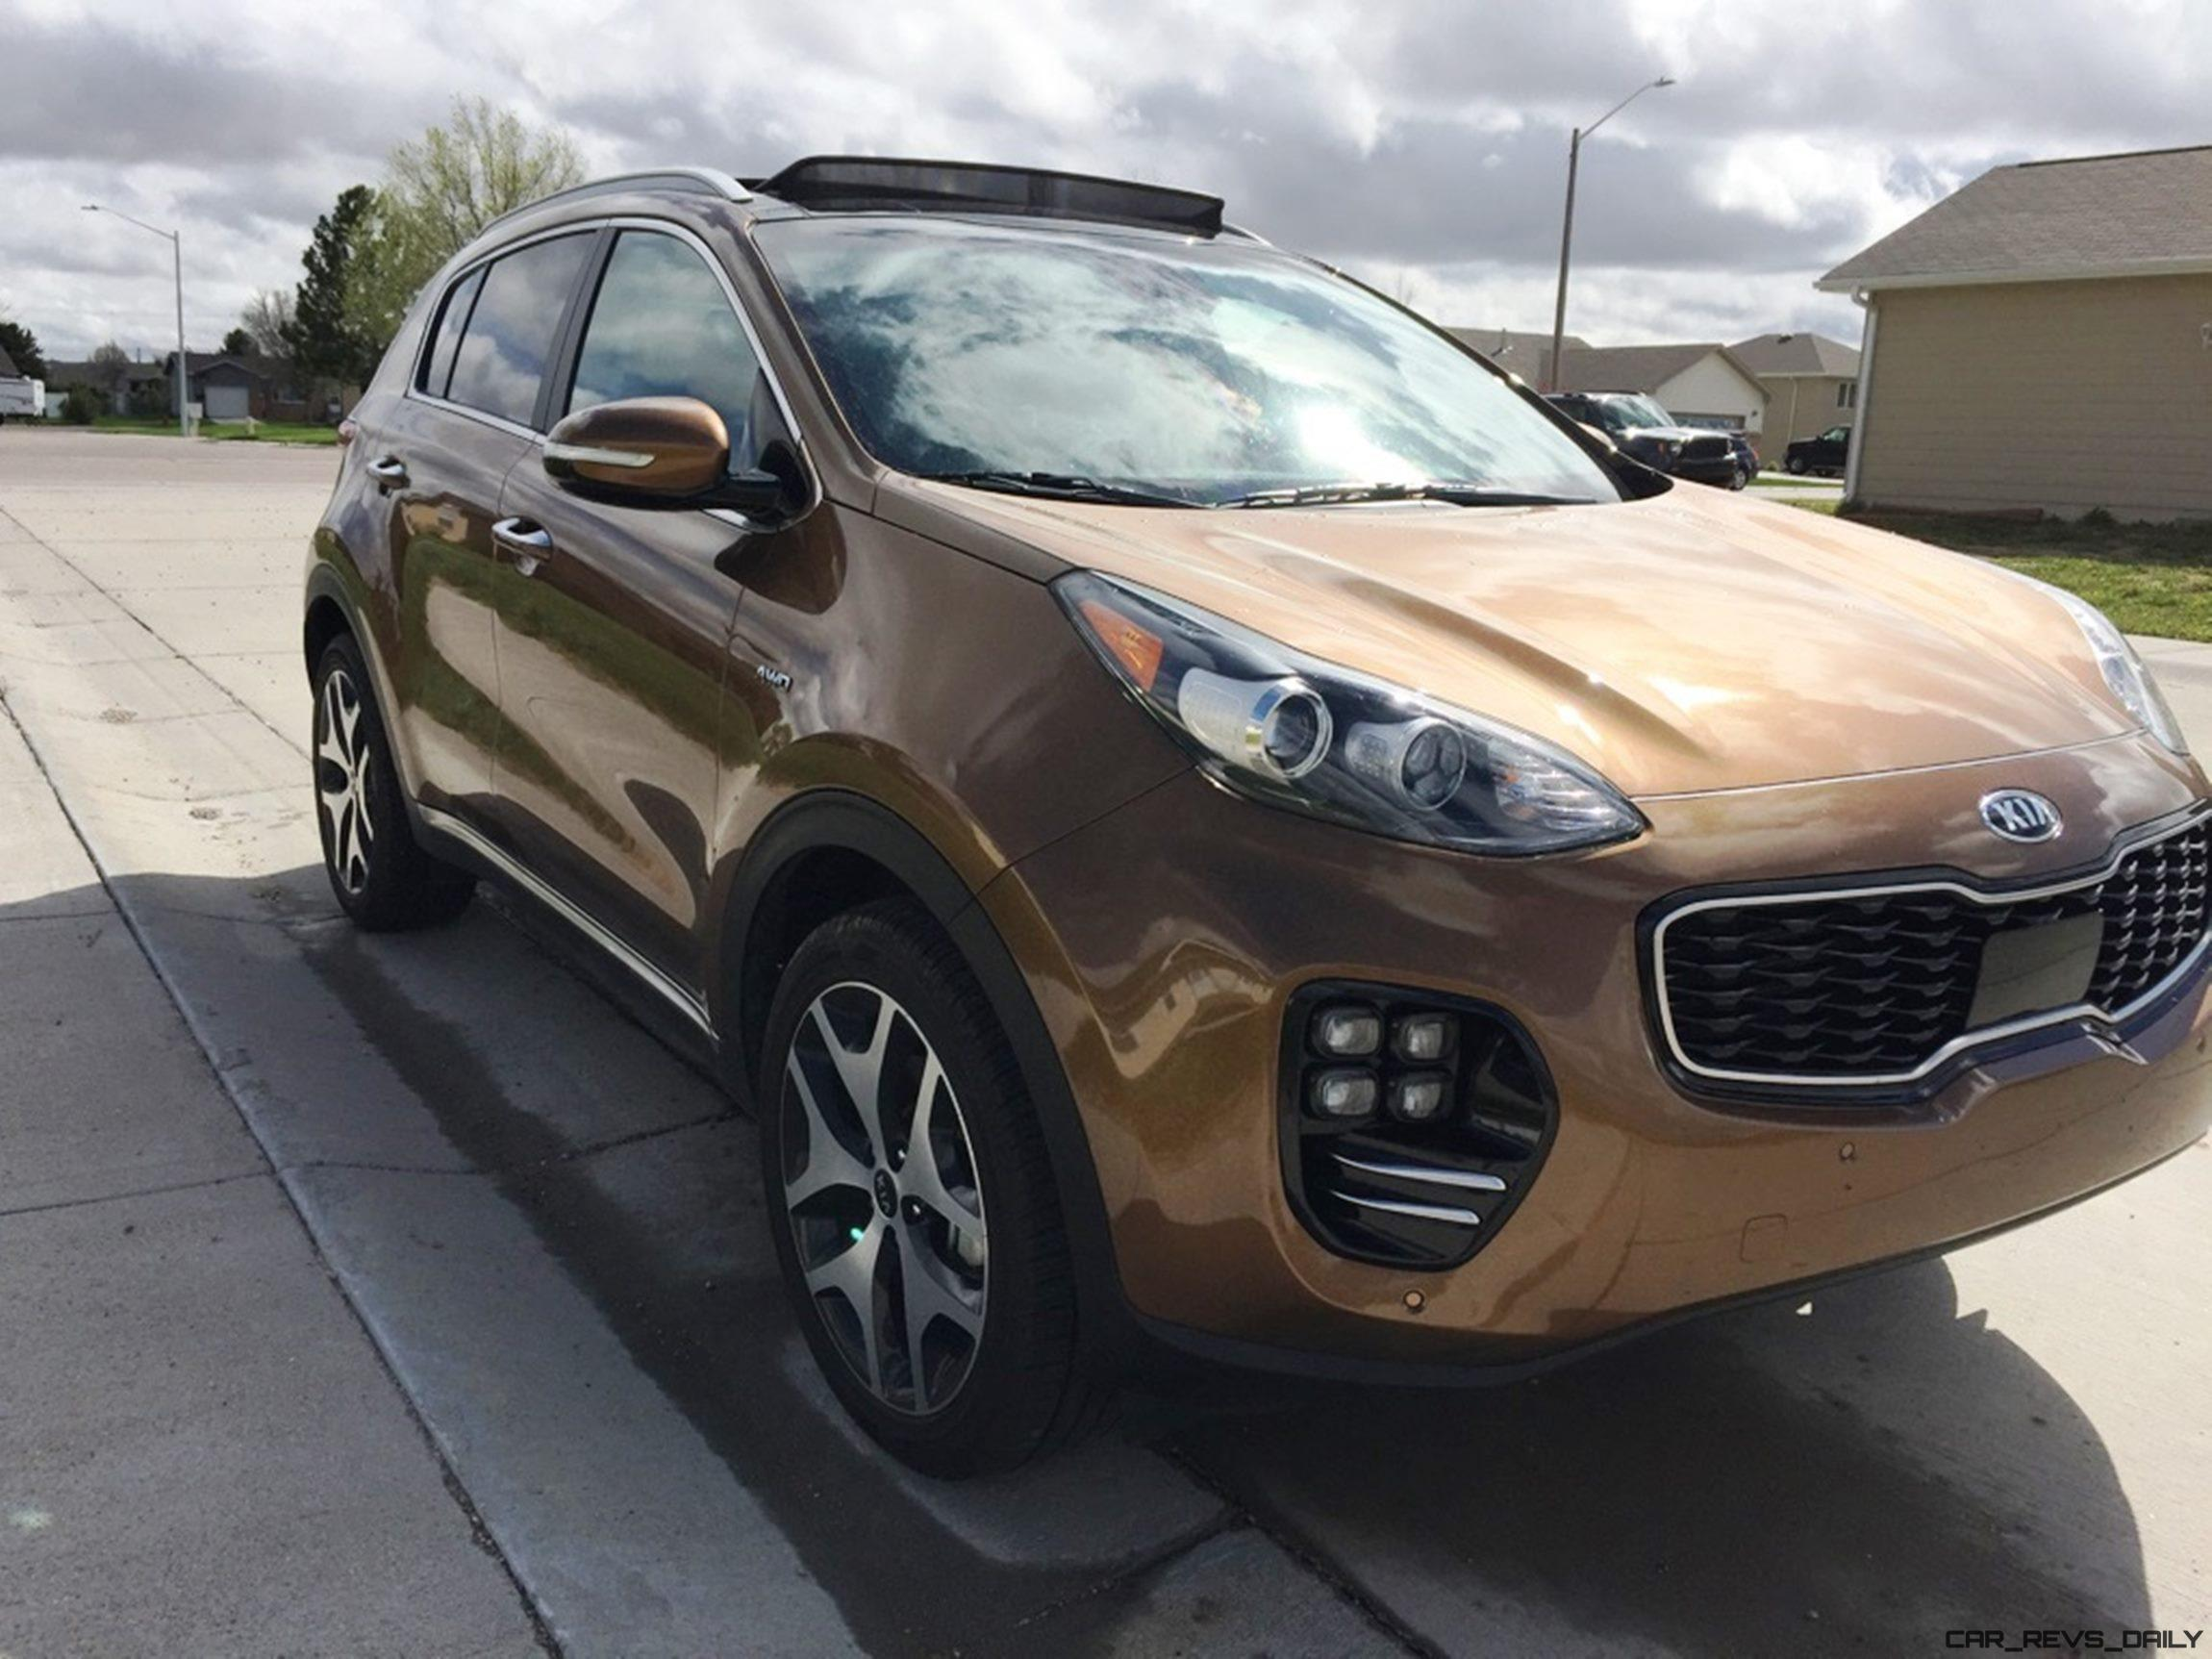 road test review 2017 kia sportage sx awd by tim esterdahl. Black Bedroom Furniture Sets. Home Design Ideas